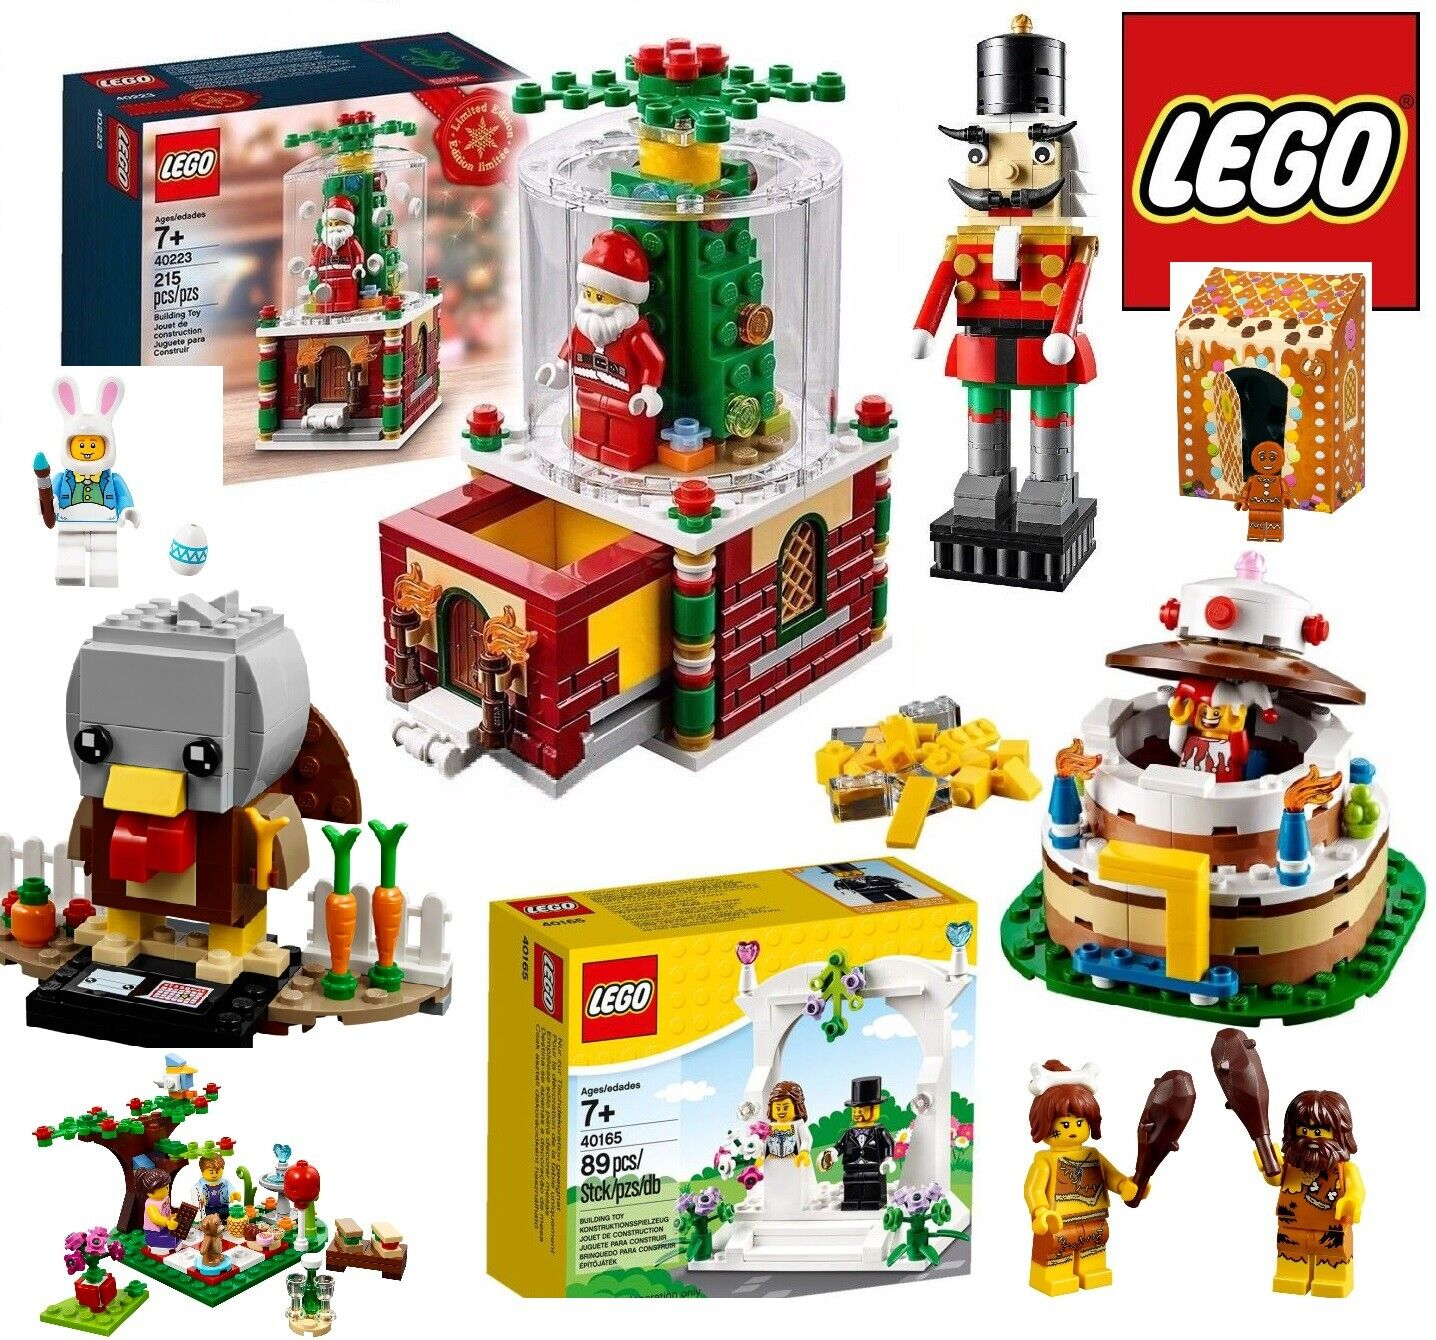 LEGO HOLIDAY & Event LIMITED -  SET ESCLUSIVI STAGIONALI PER RICORRENZE specialeeI  vendita scontata online di factory outlet